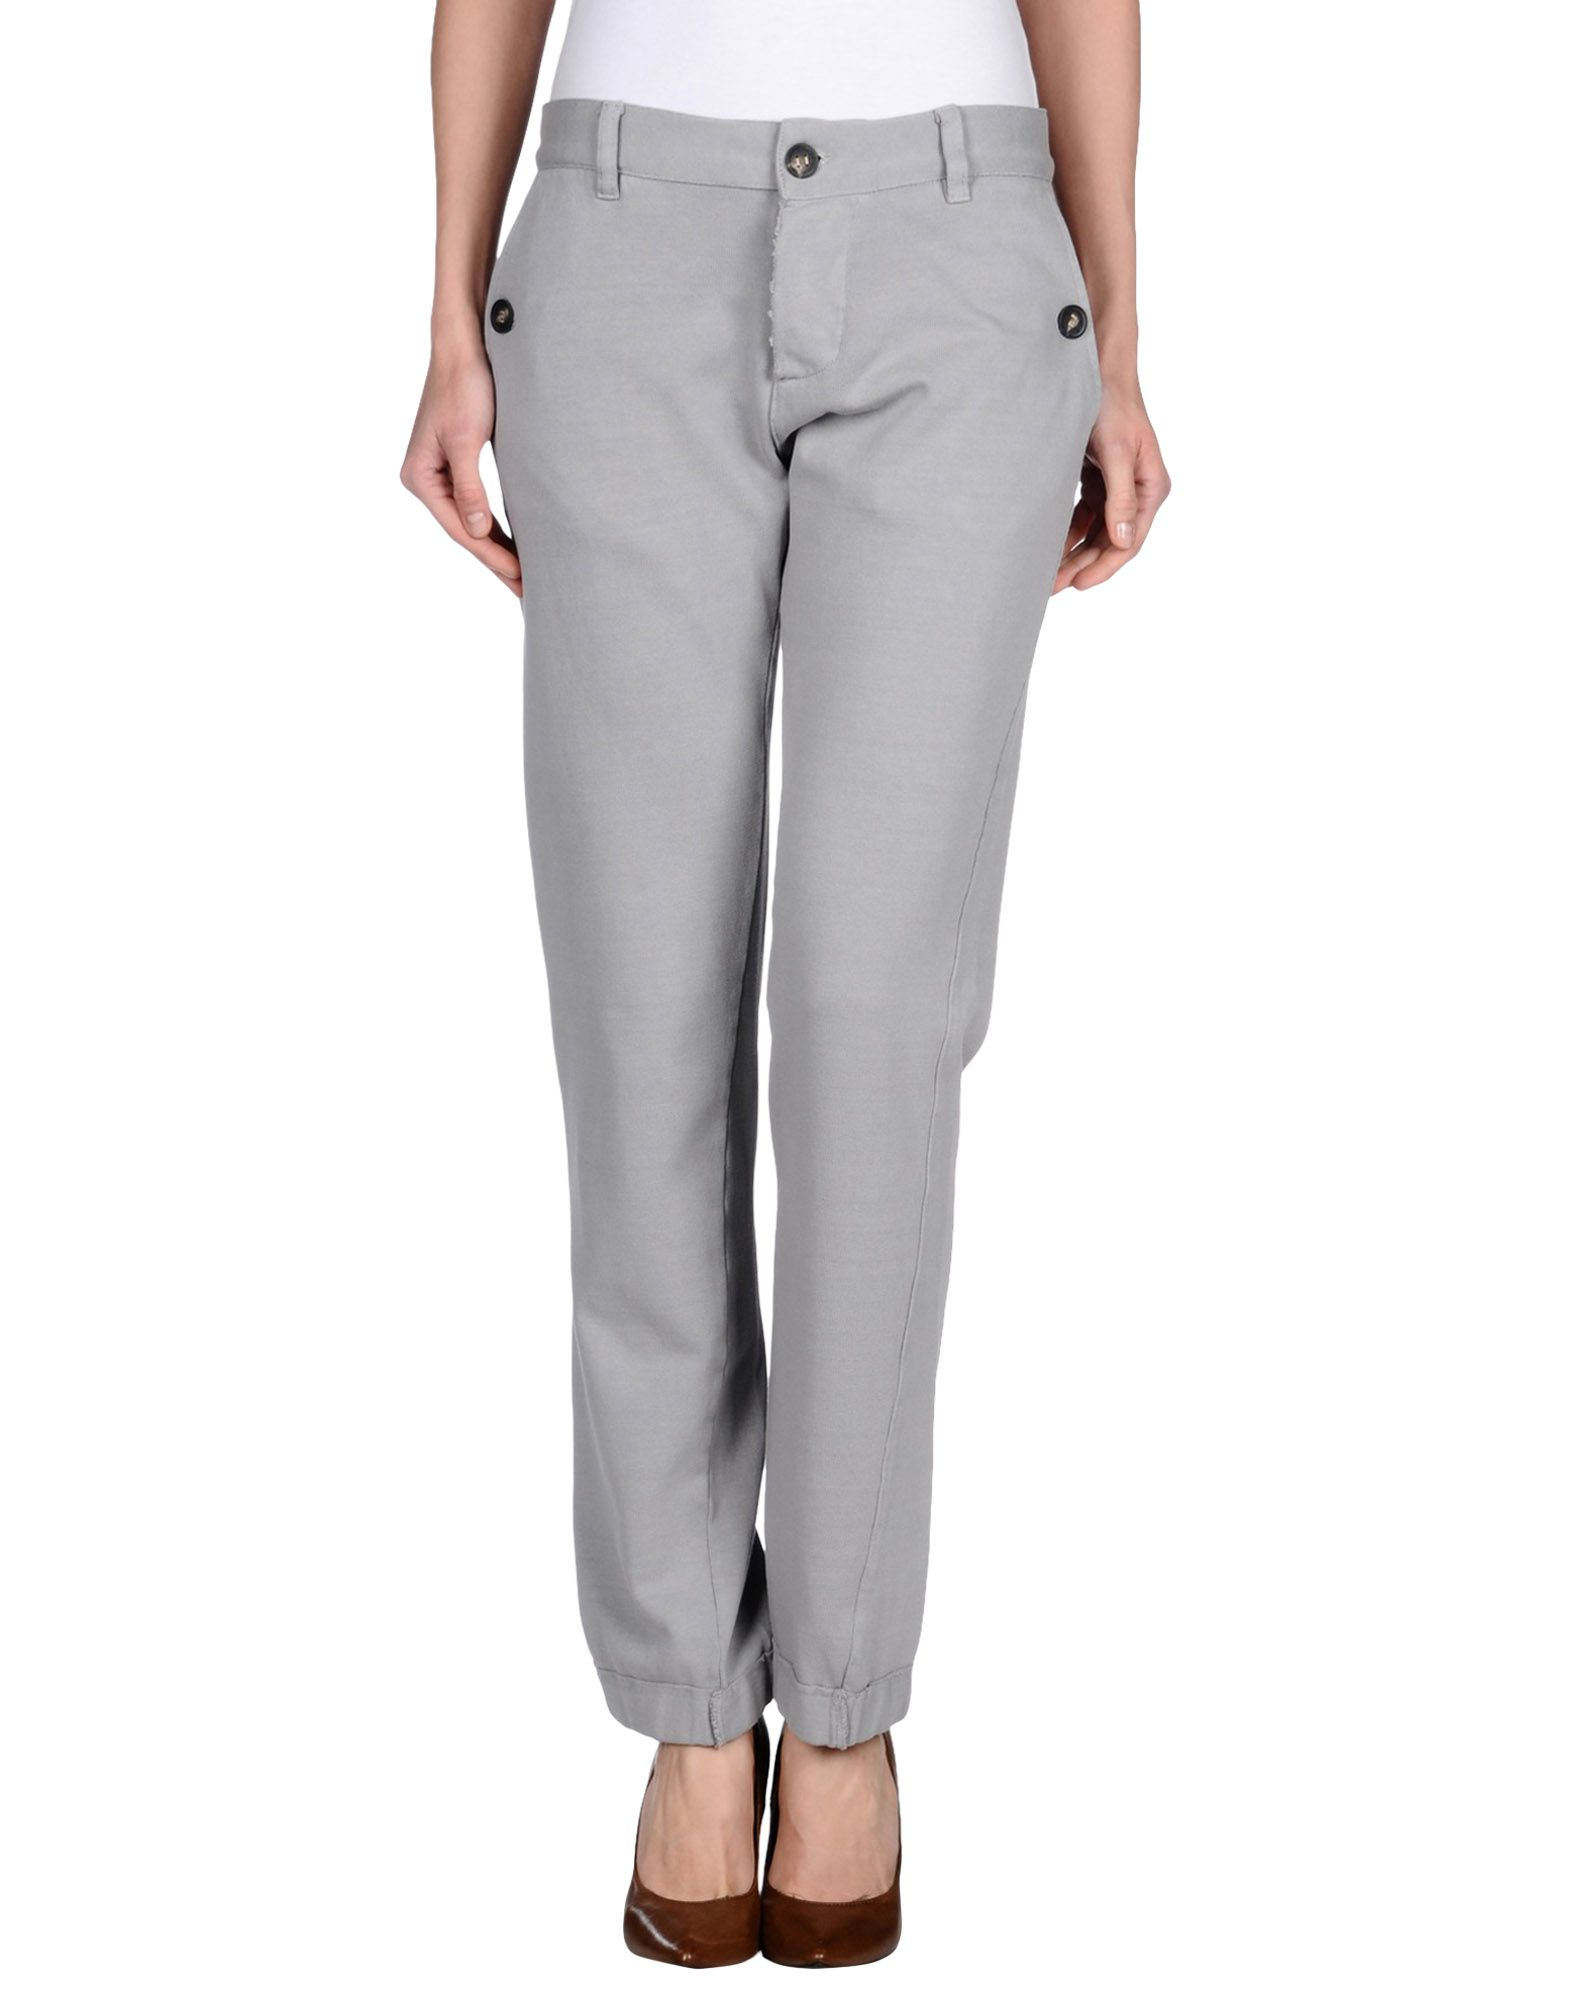 Awesome Jeckerson Denim Trousers In Gray Light Grey  Save 61  Lyst